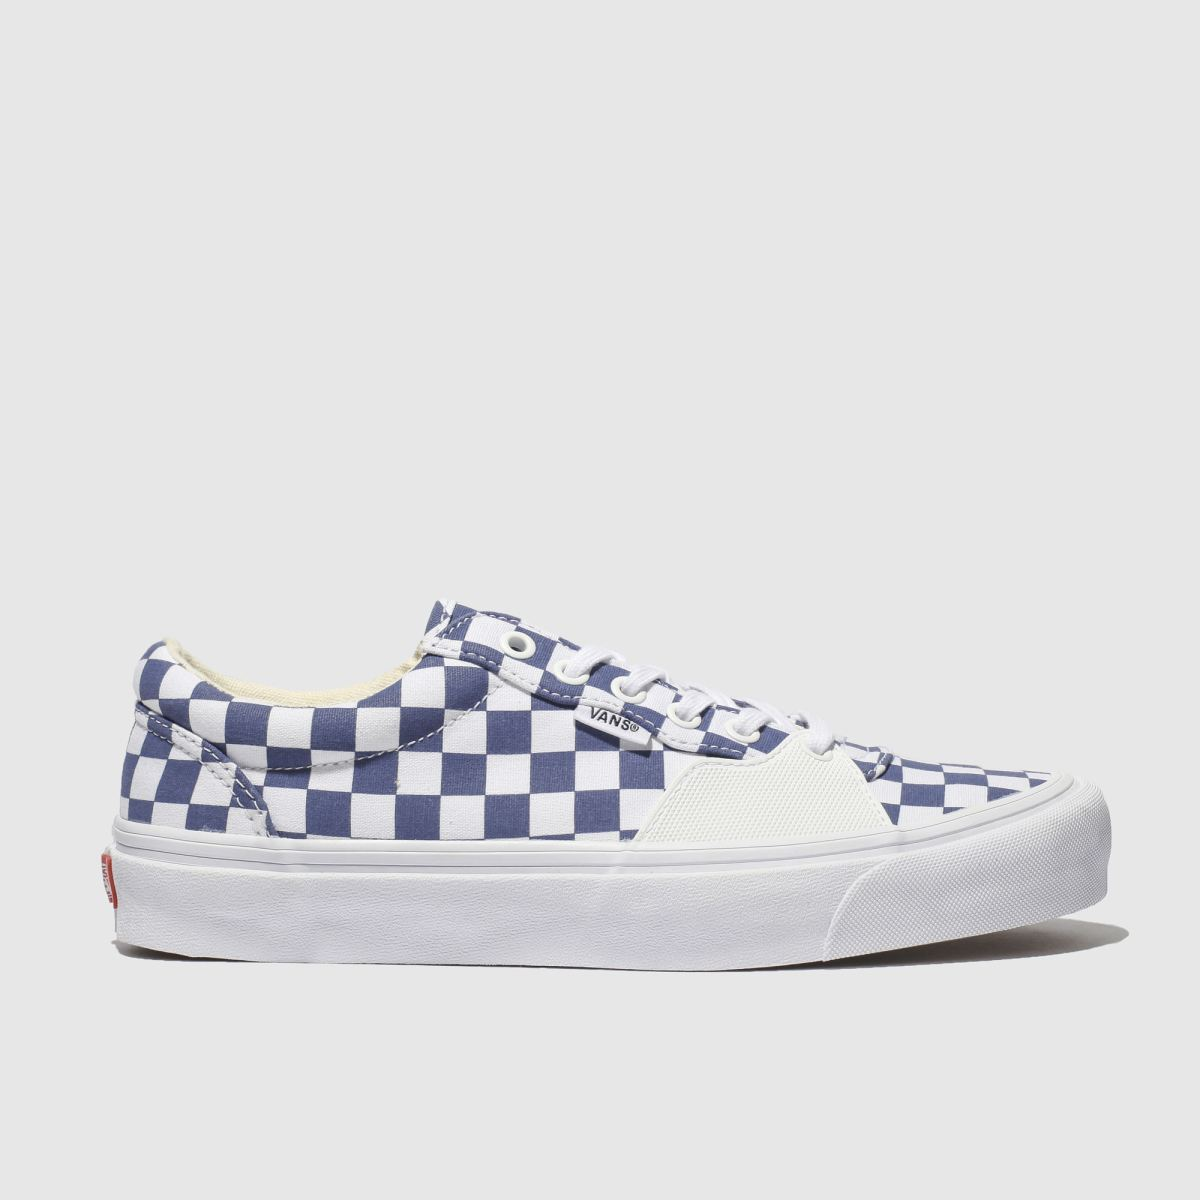 Vans White & Navy Style 205 Trainers